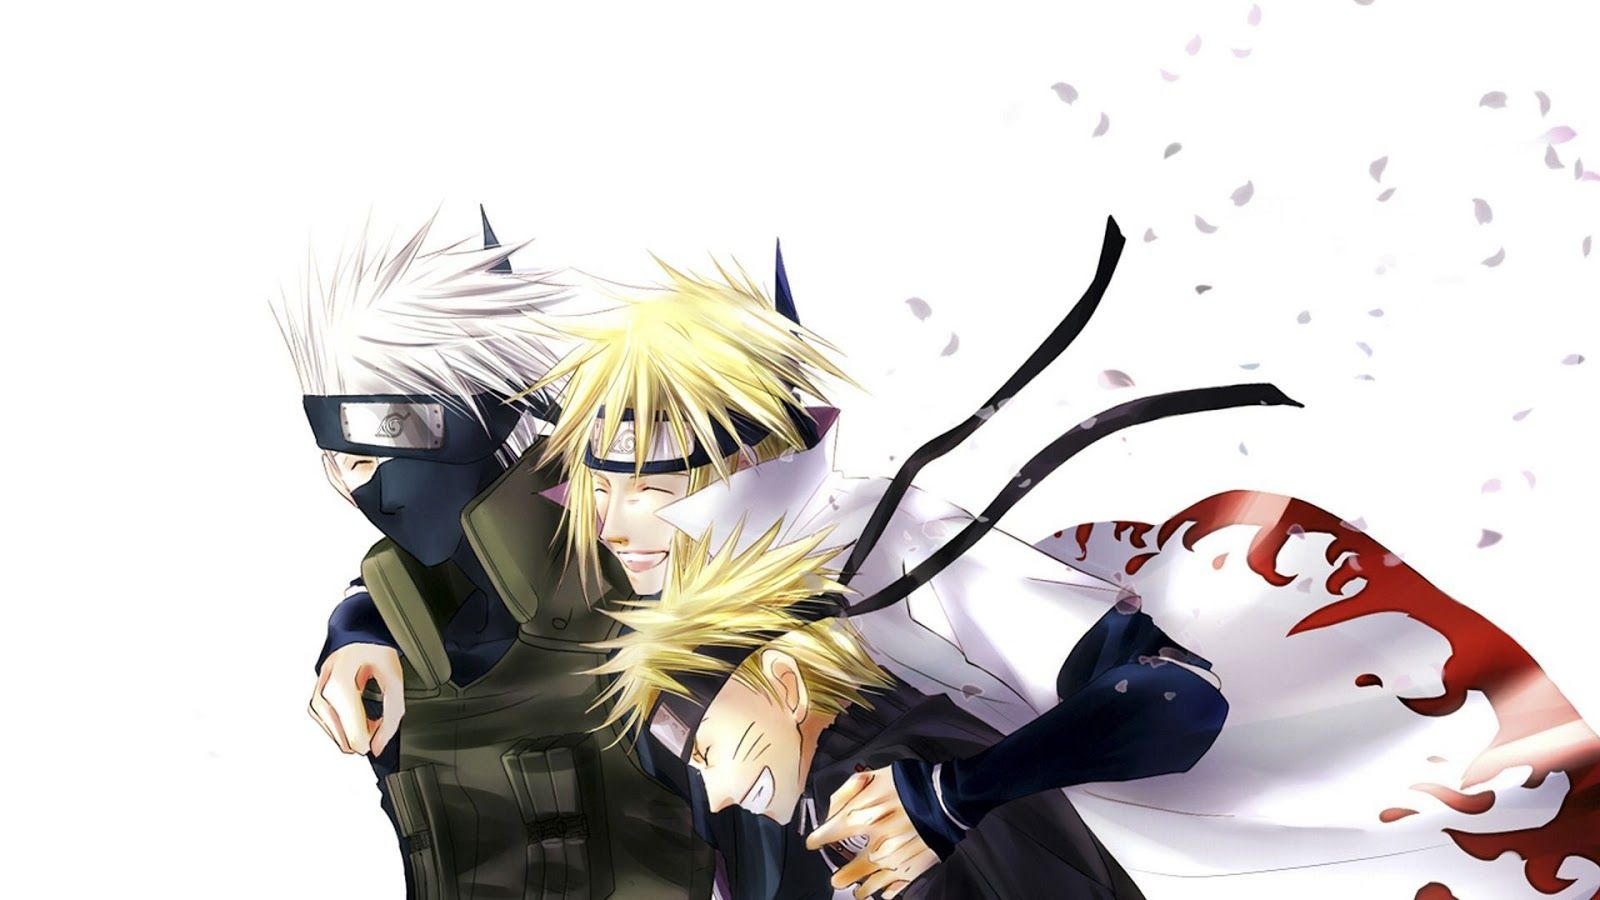 naruto hd wallpapers free download 1600×900 naruto wallpapers for